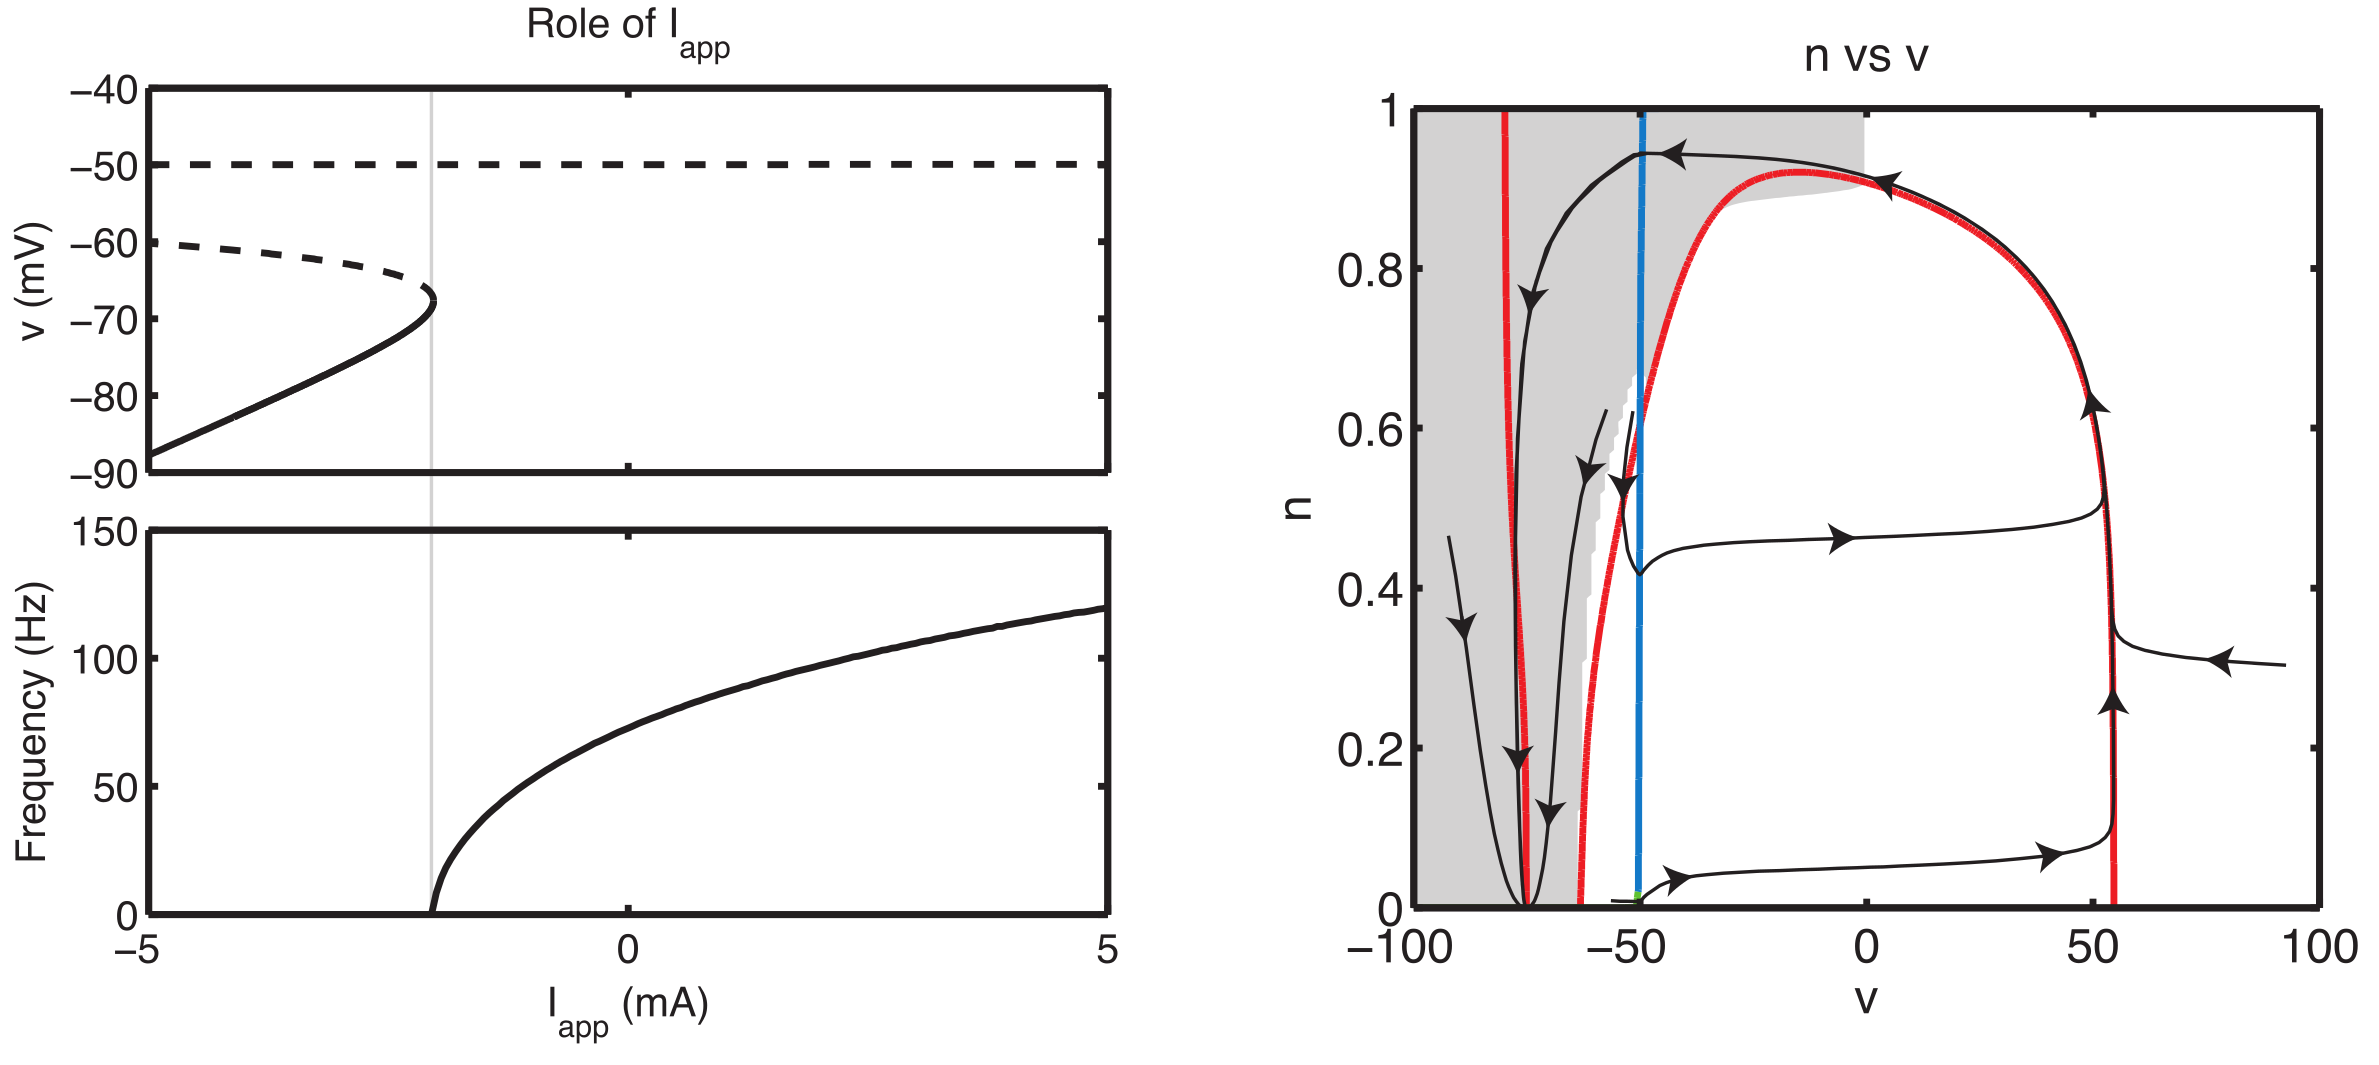 Dynamical systems analysis of action potential model